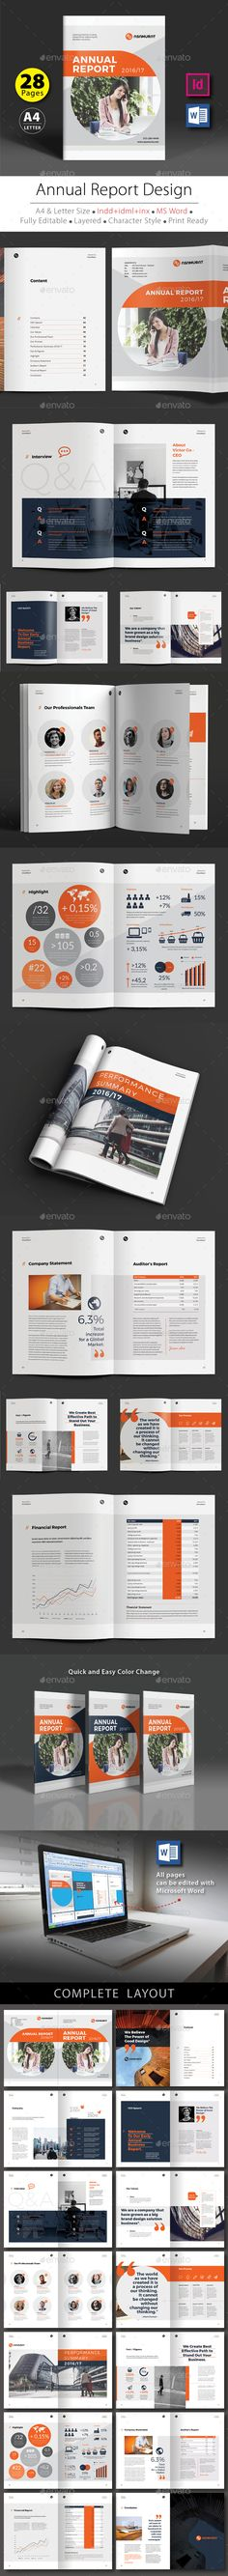 Annual Report Design Template V.4 - #Corporate #Brochures Download here: https://graphicriver.net/item/annual-report-design-template-v4/19628724?ref=alena994